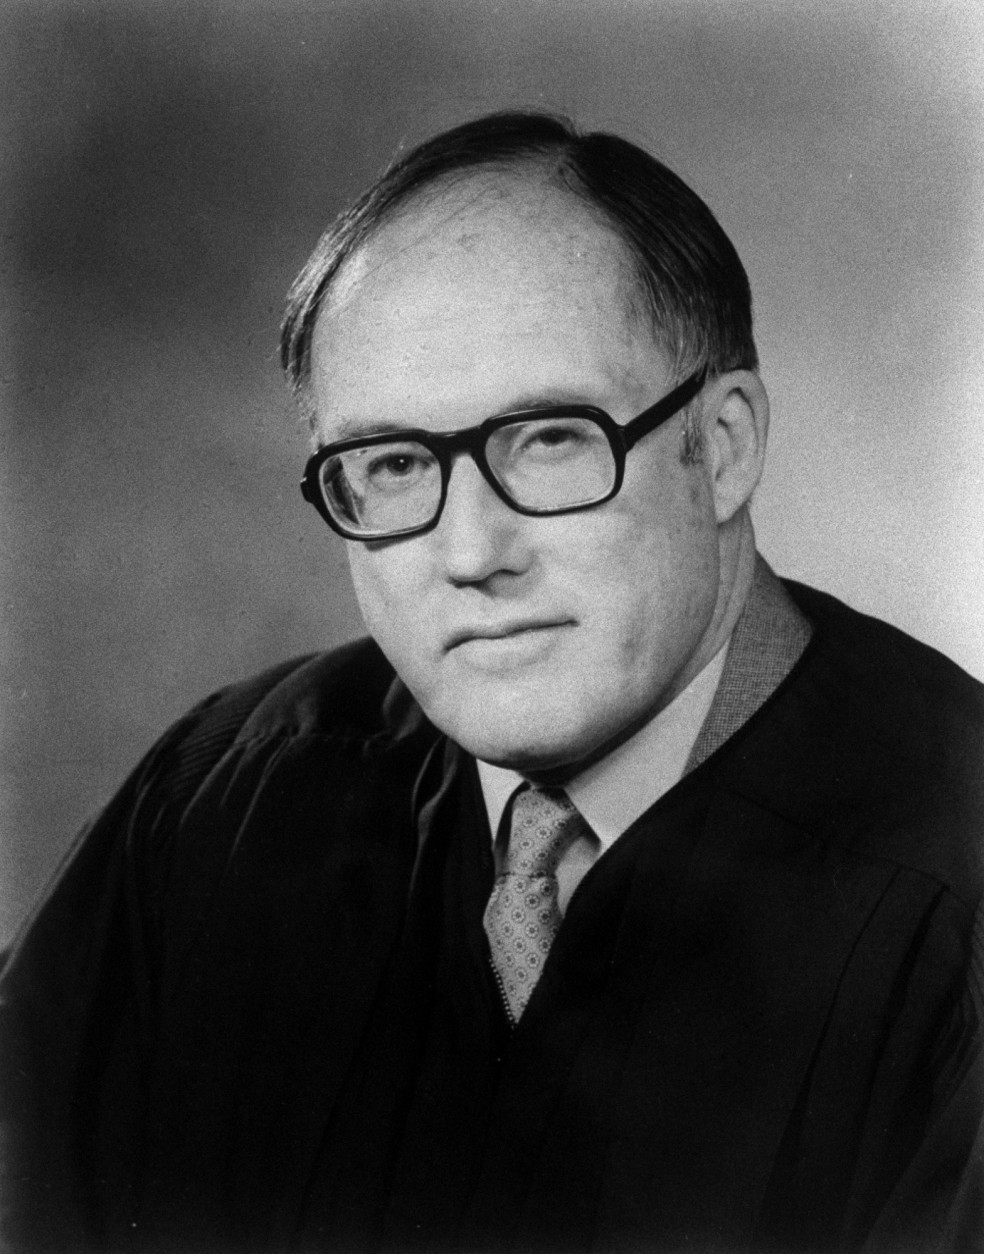 On this date in 2005, U.S. Chief Justice William H. Rehnquist died in Arlington, Virginia, at age 80, after more than three decades on the Supreme Court. ( AP Photo / file  )